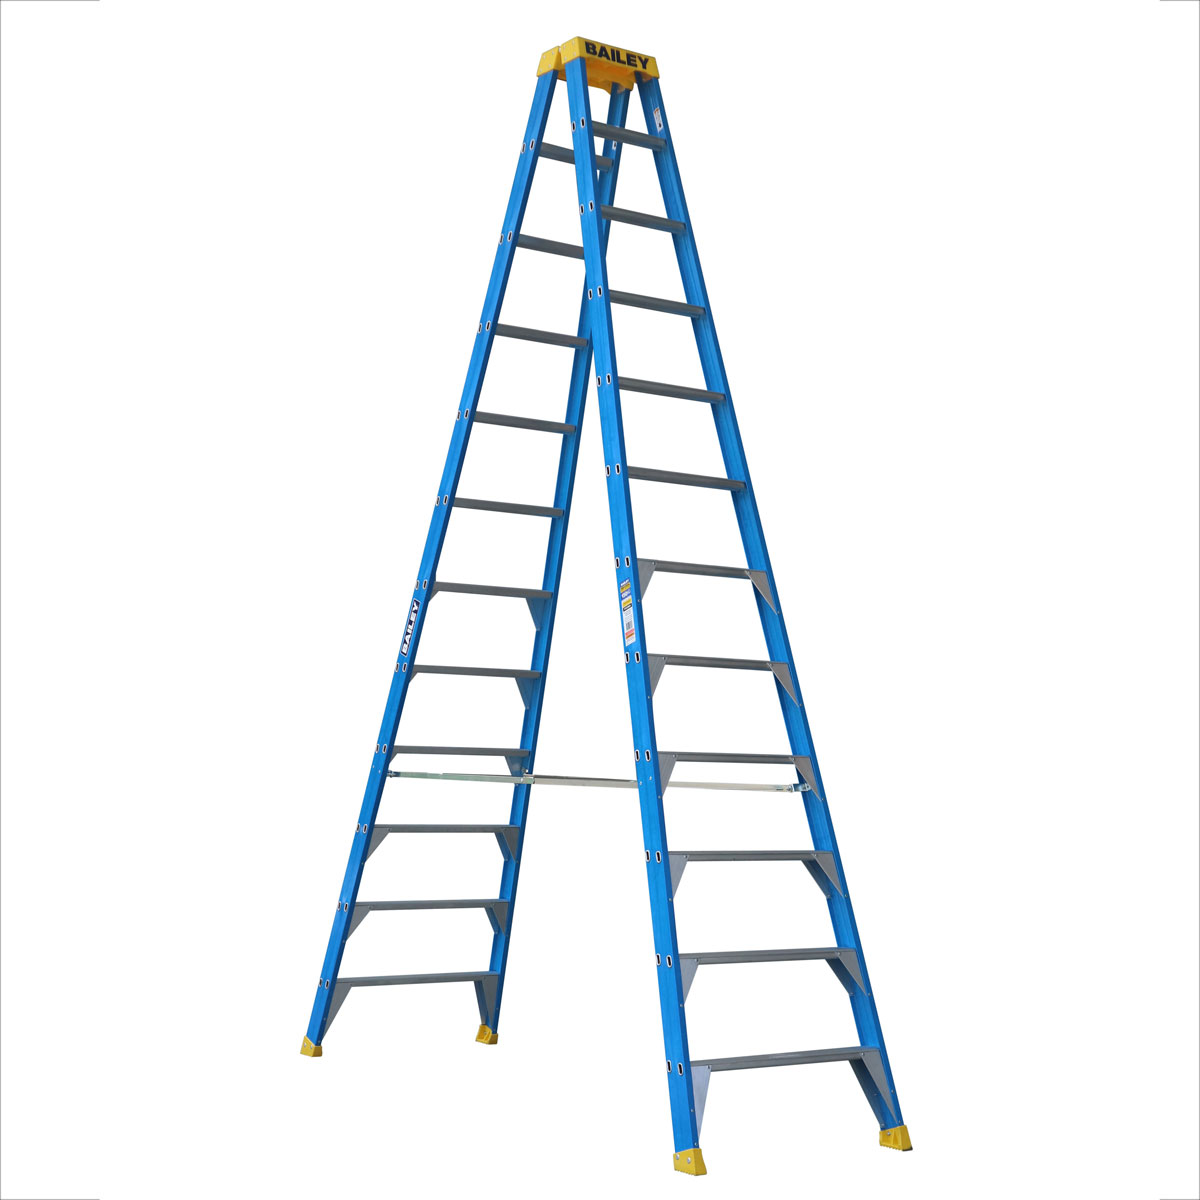 Ladder - Double Sided Fibreglass Bailey Industrial Punchlock 150kg 12-Step 3.6M